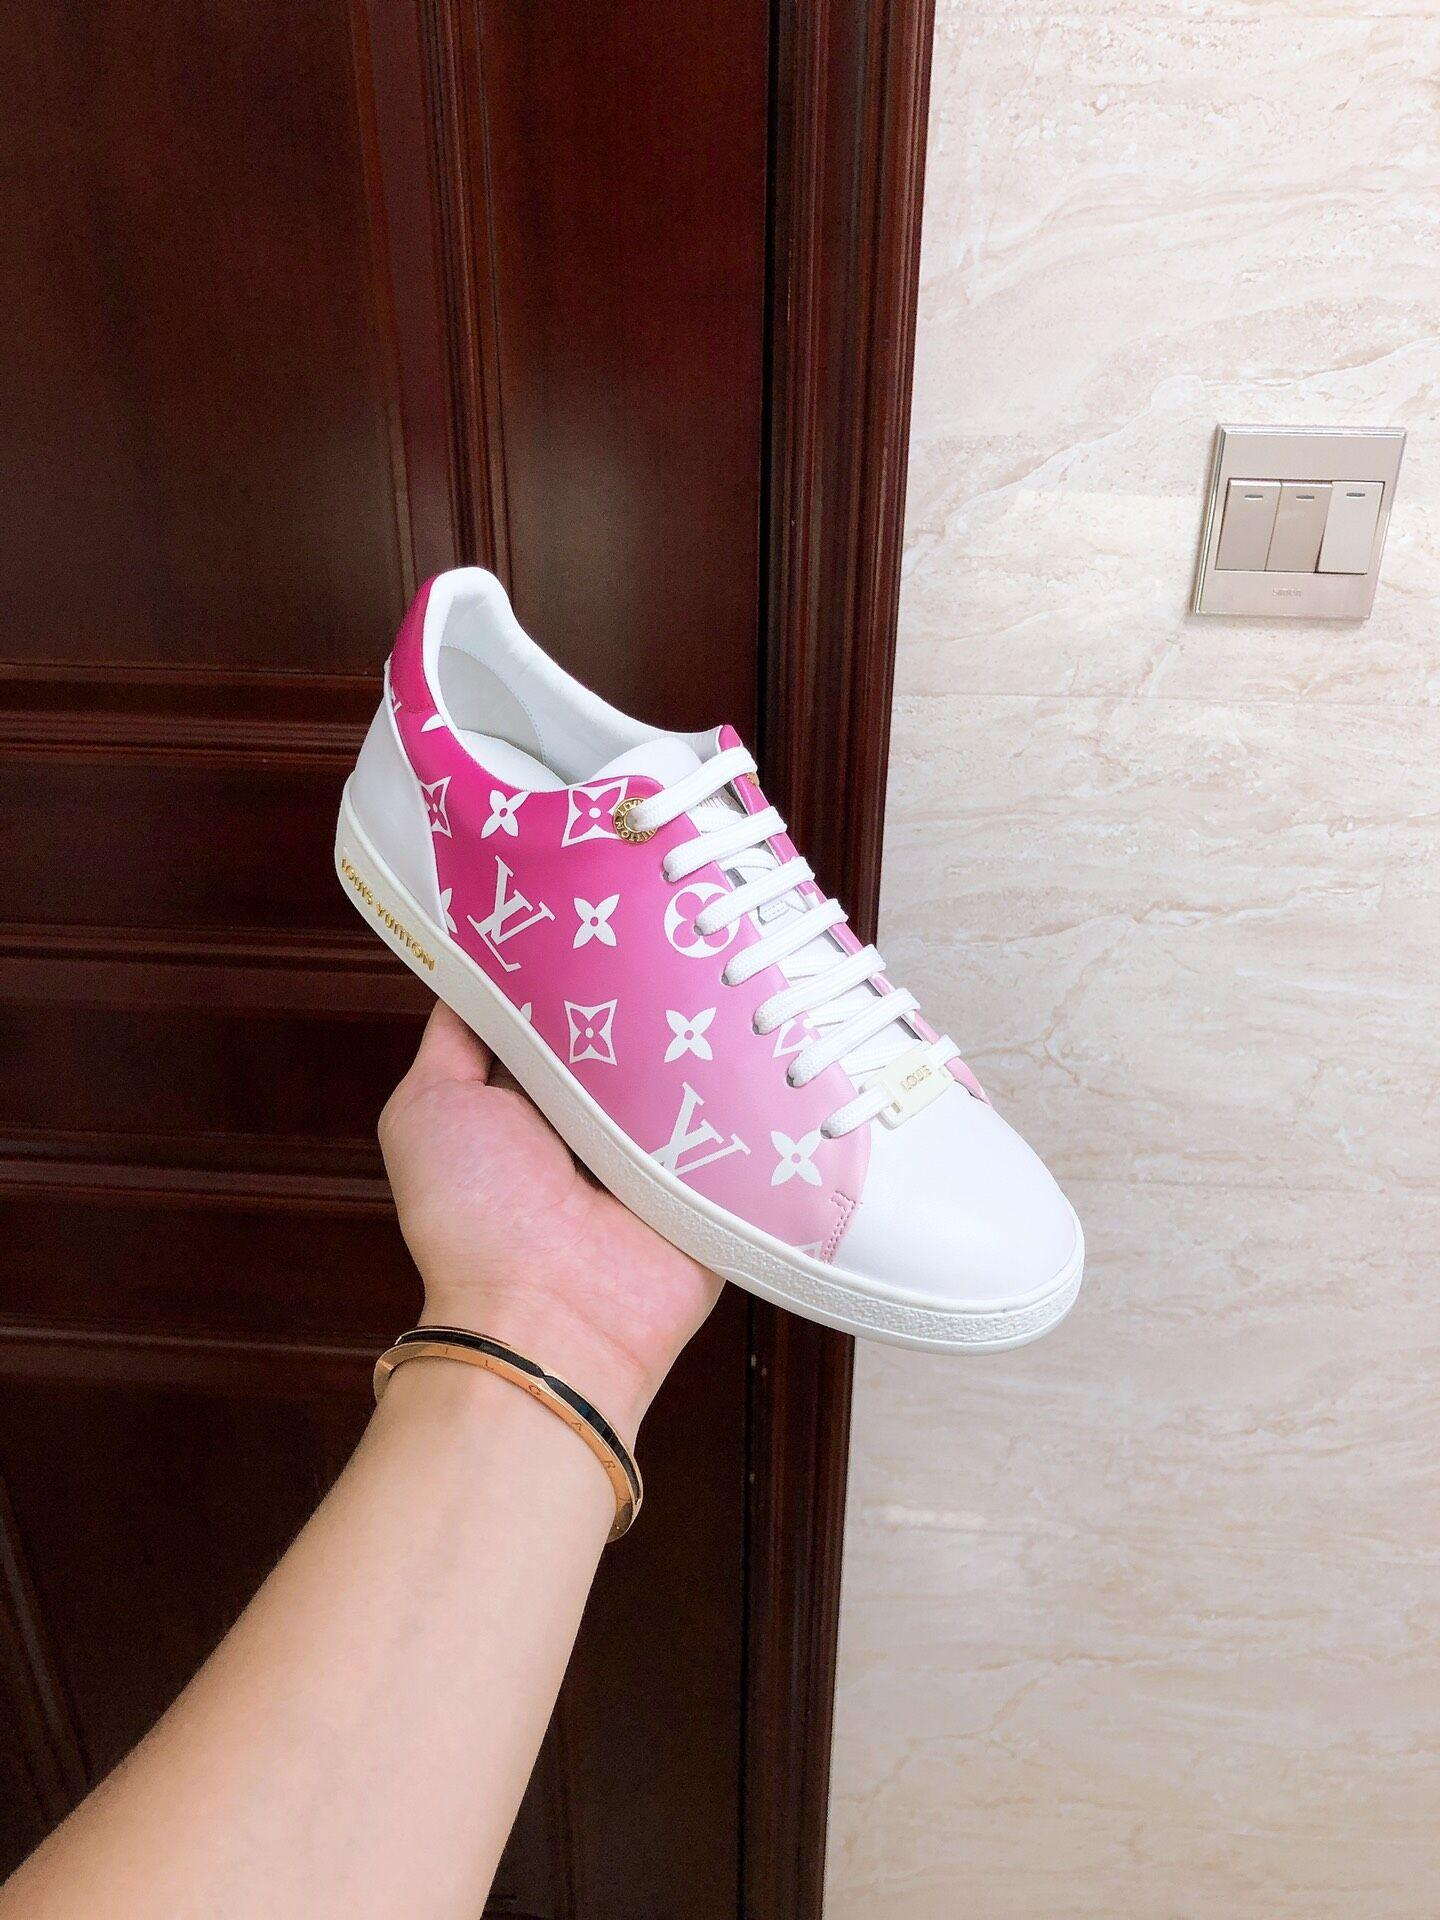 frontrow sneaker    sneaker    women shoes    pink  shoes 1A87CE  1